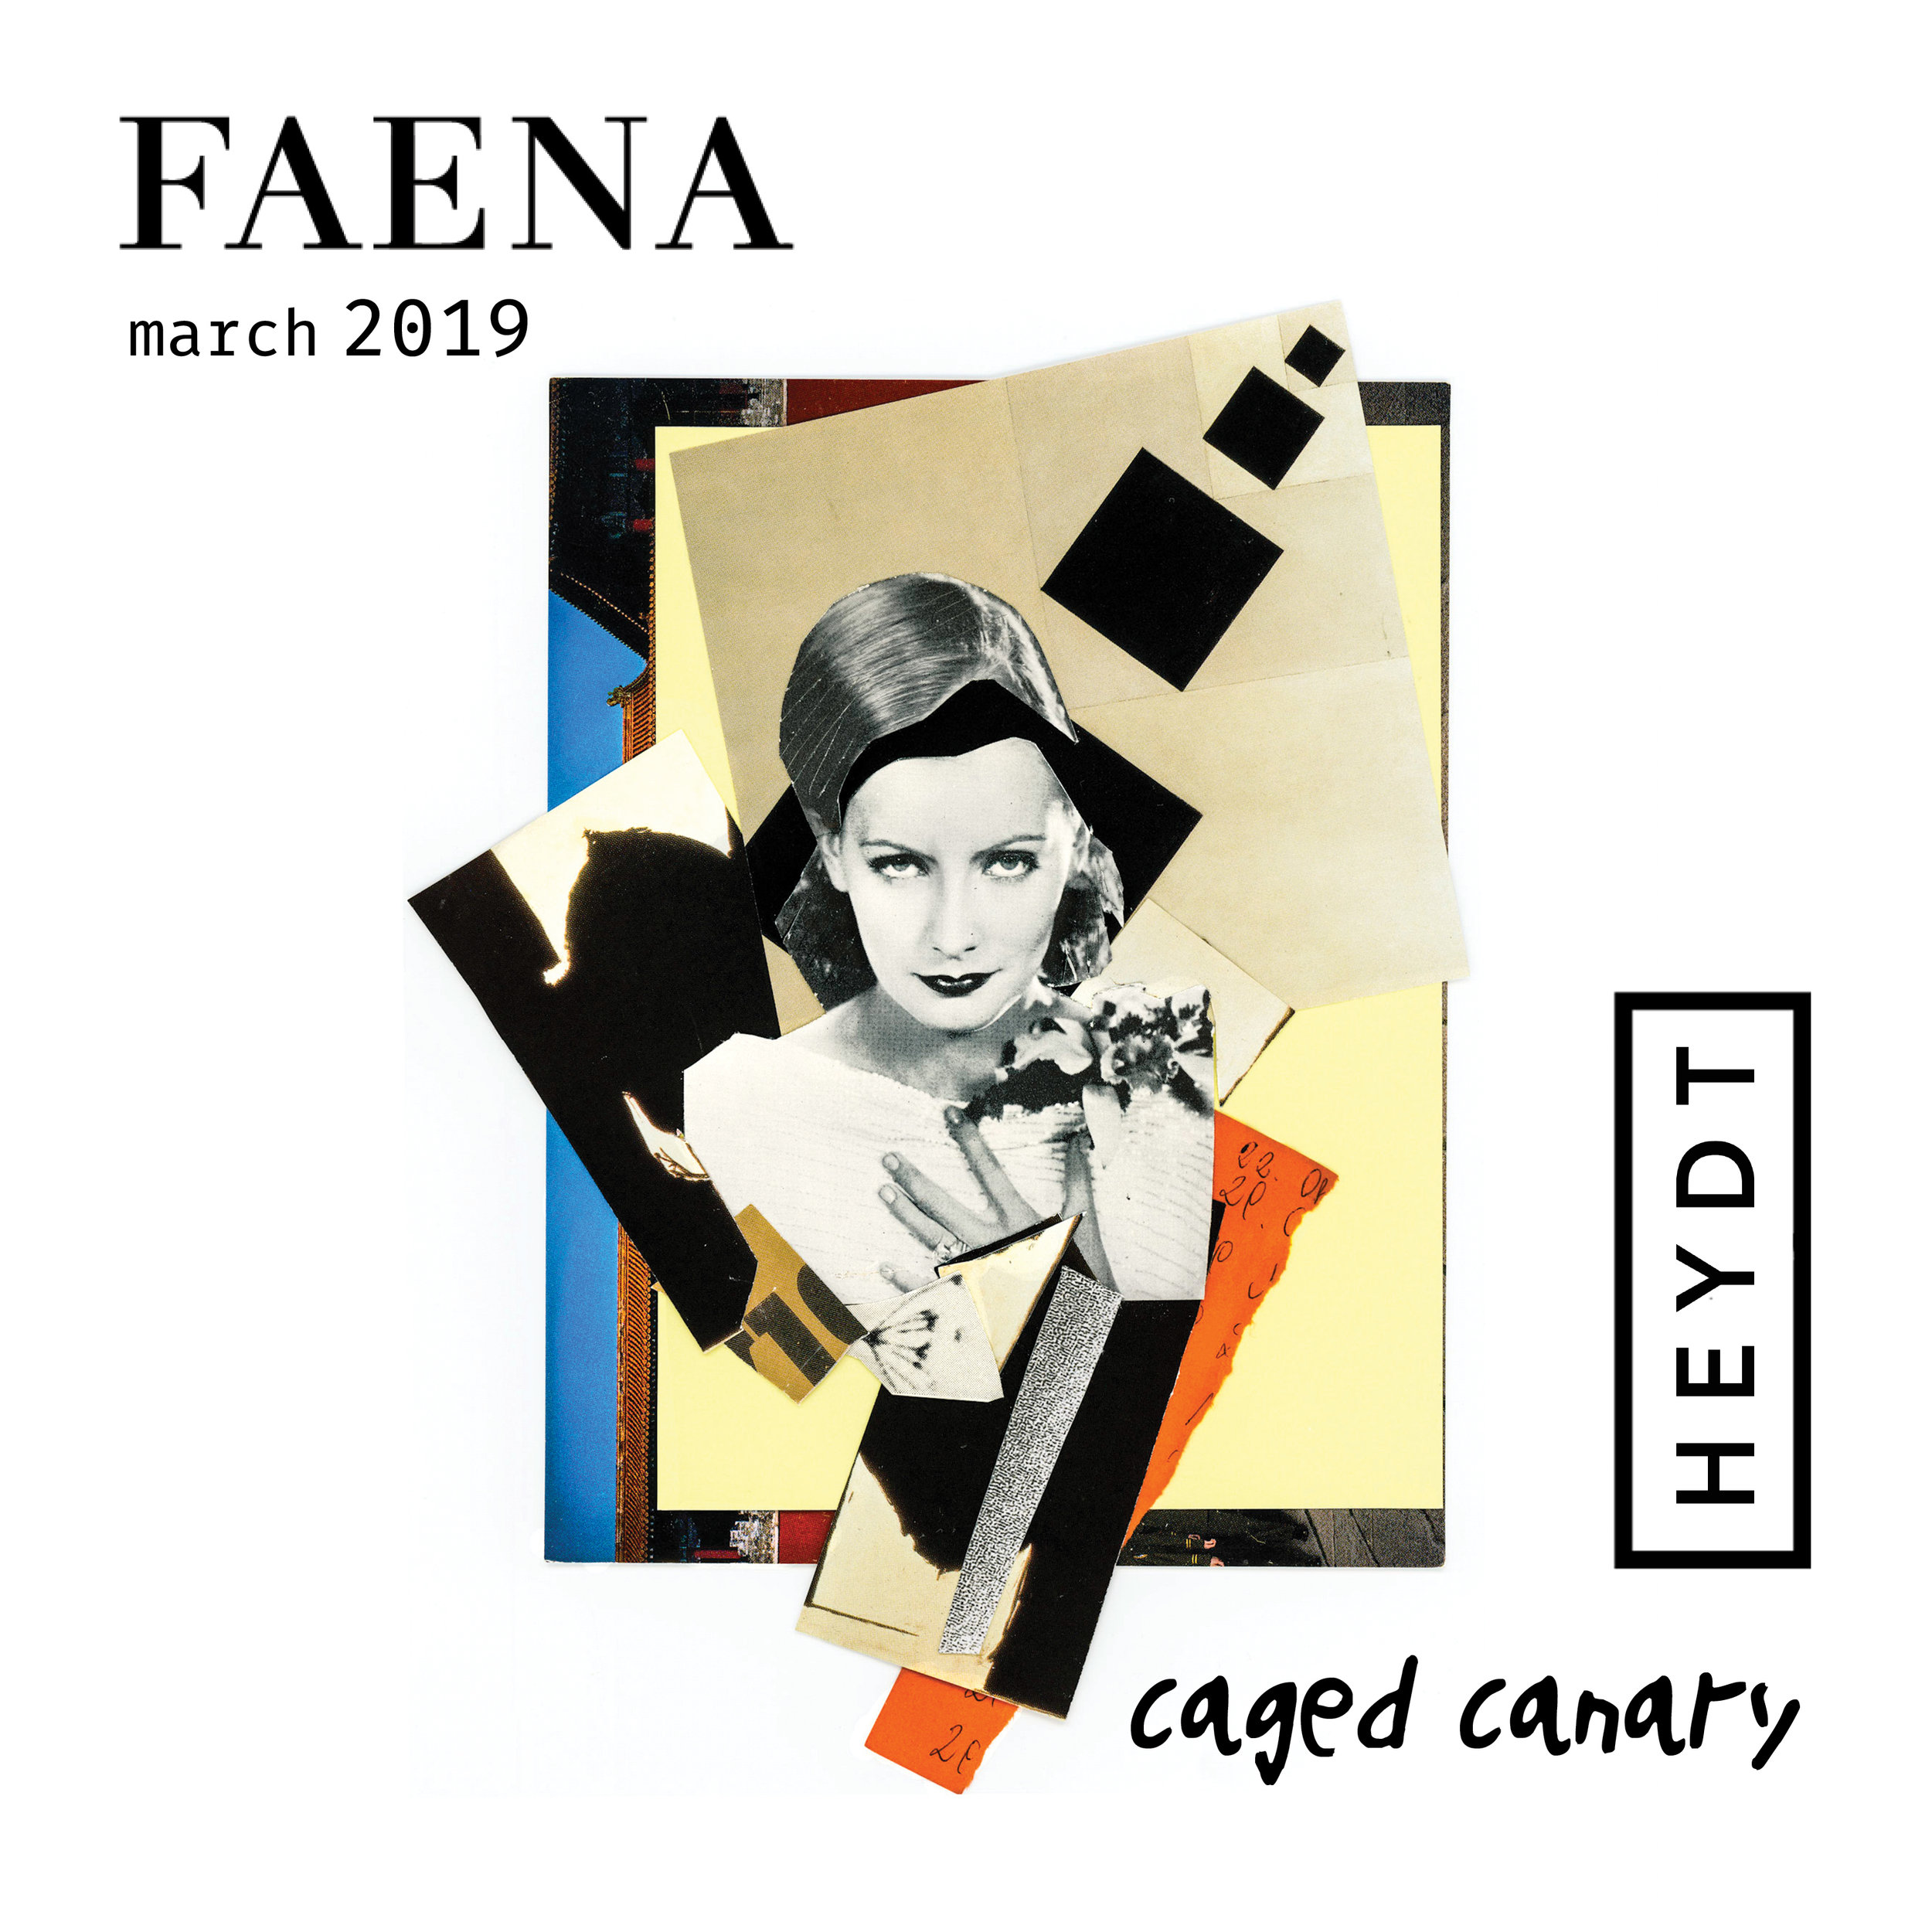 Faena-Inventory-HEYDT-March20193.jpg